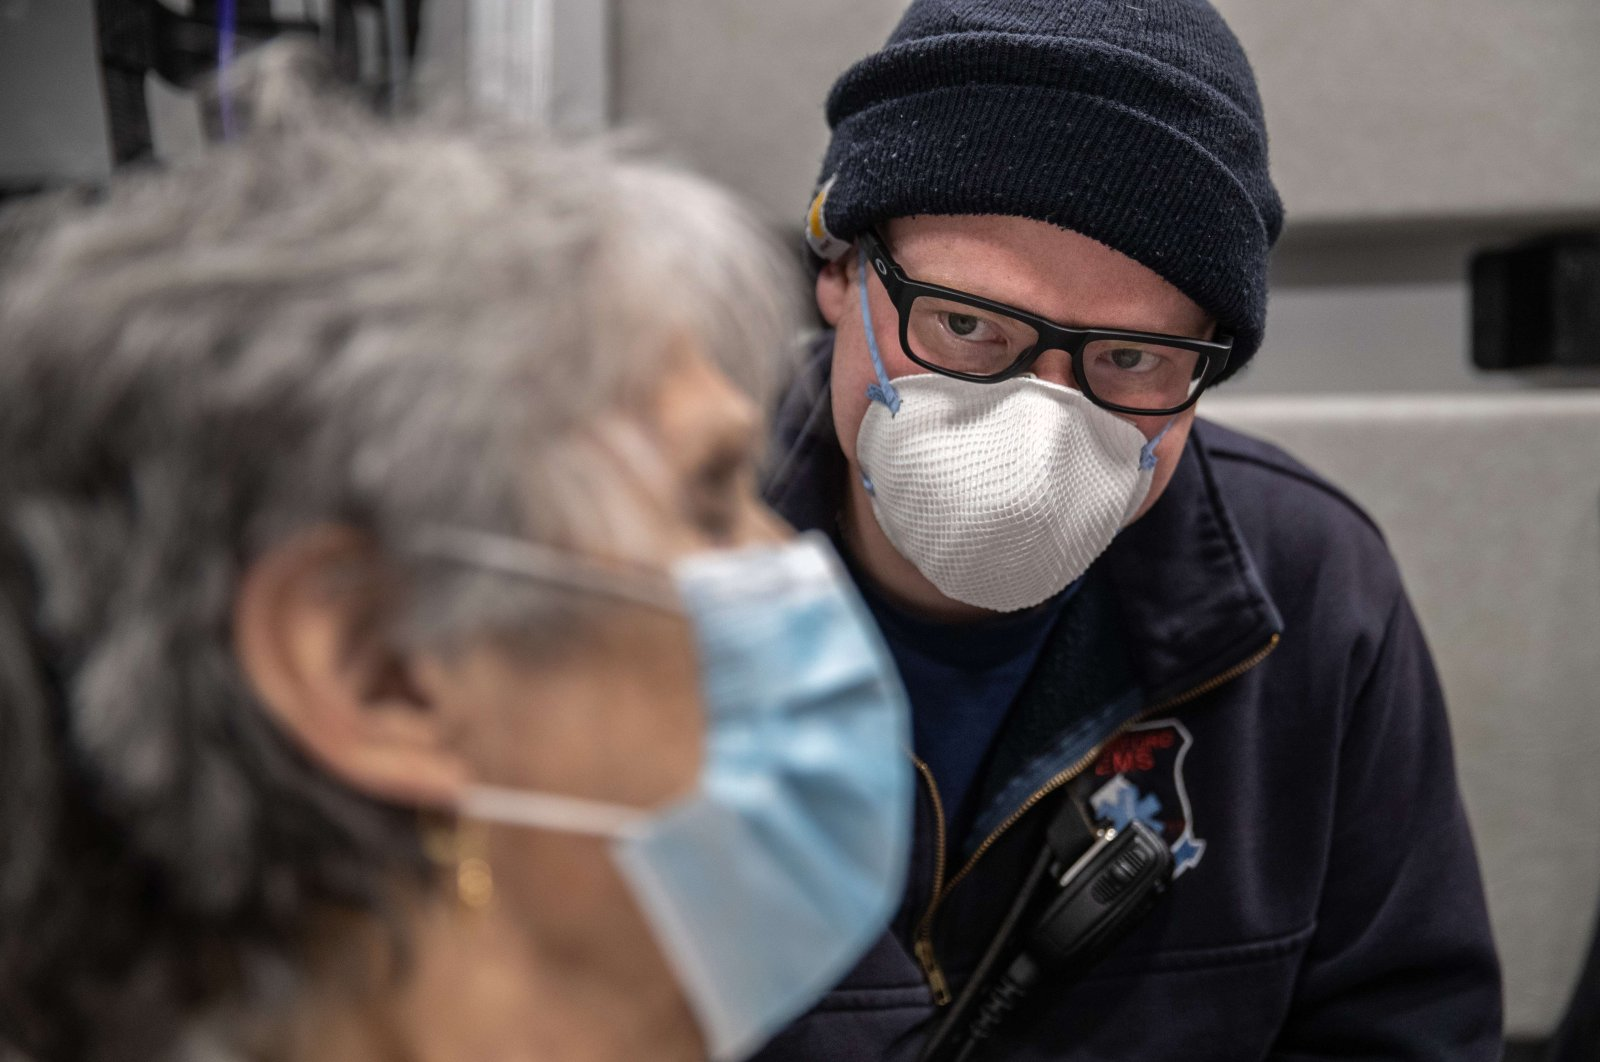 A paramedic watches over Janet Gazo, 89, while transporting her by ambulance to Stamford Hospital, Connecticut, Friday, April 3, 2020  (AFP Photo)